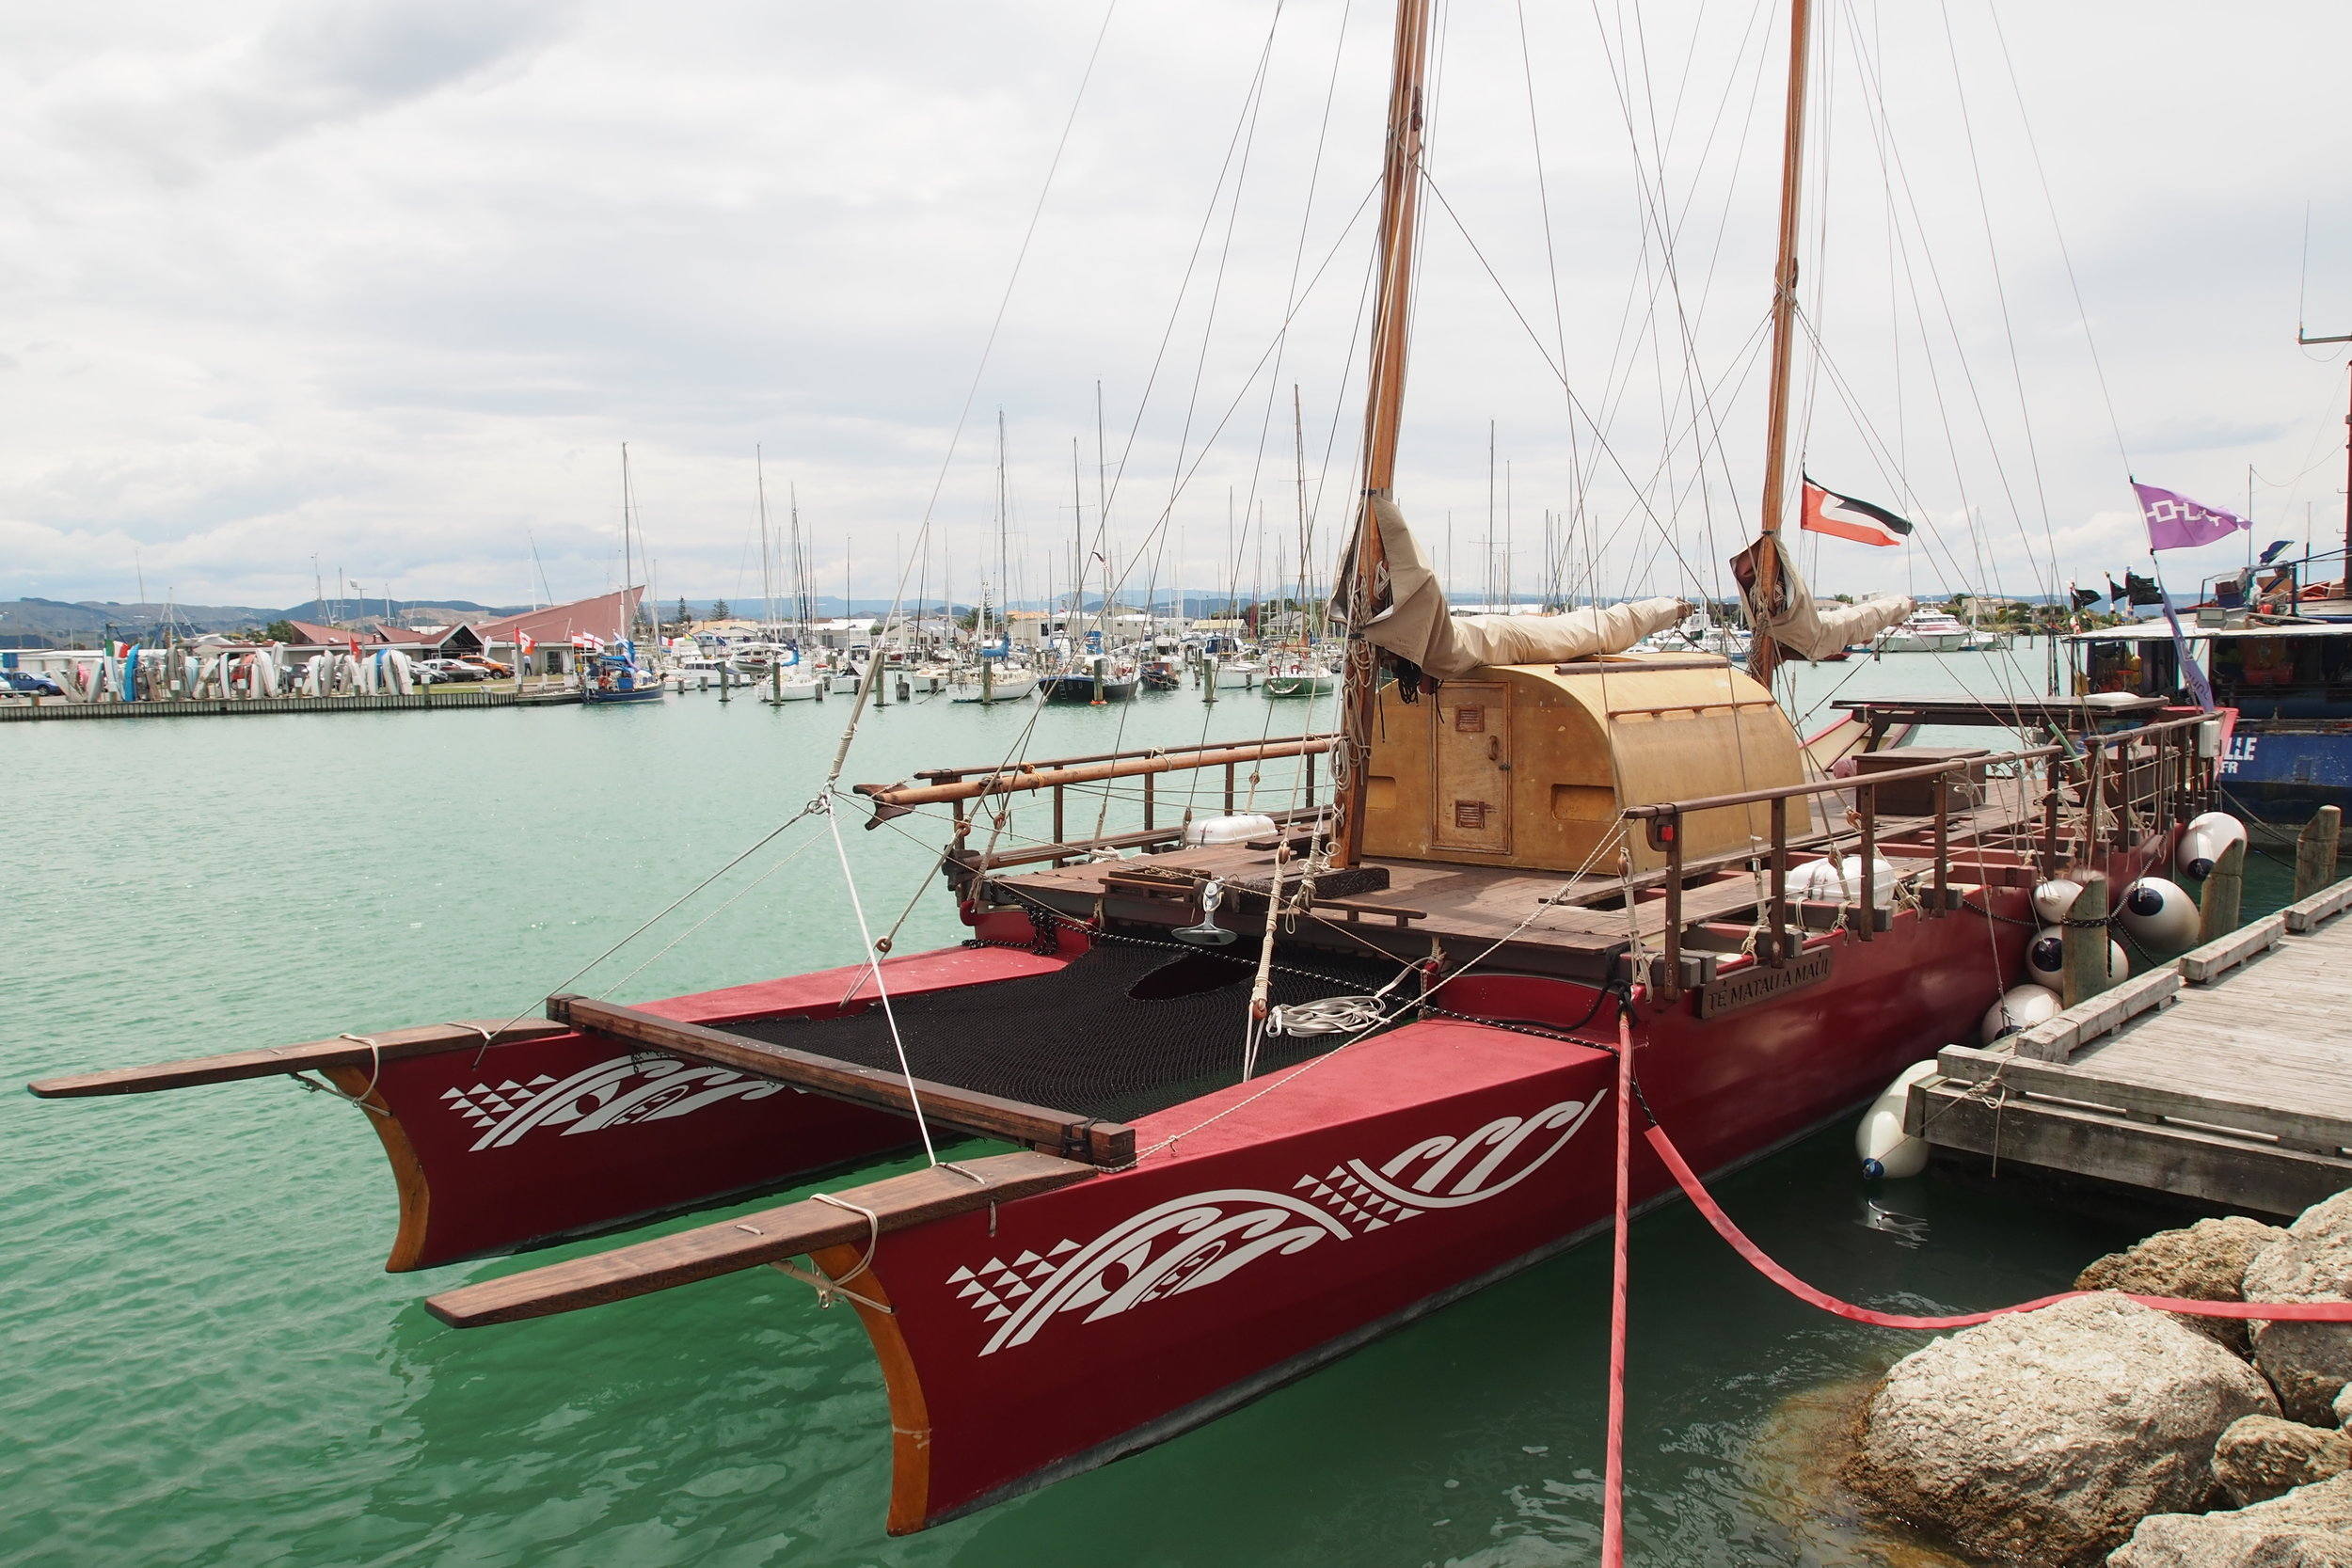 The voyaging waka Te Matua a Maui, seen here at Napier's Ahuriri Marina in January 2018, will conduct a survey of plastic debris as it sails south along the East Coast to Wellington, where it will join other 'vaka' and waka taua (Maori war canoes) at a  regatta to launch the Wellington International Arts Festival on 23 February.